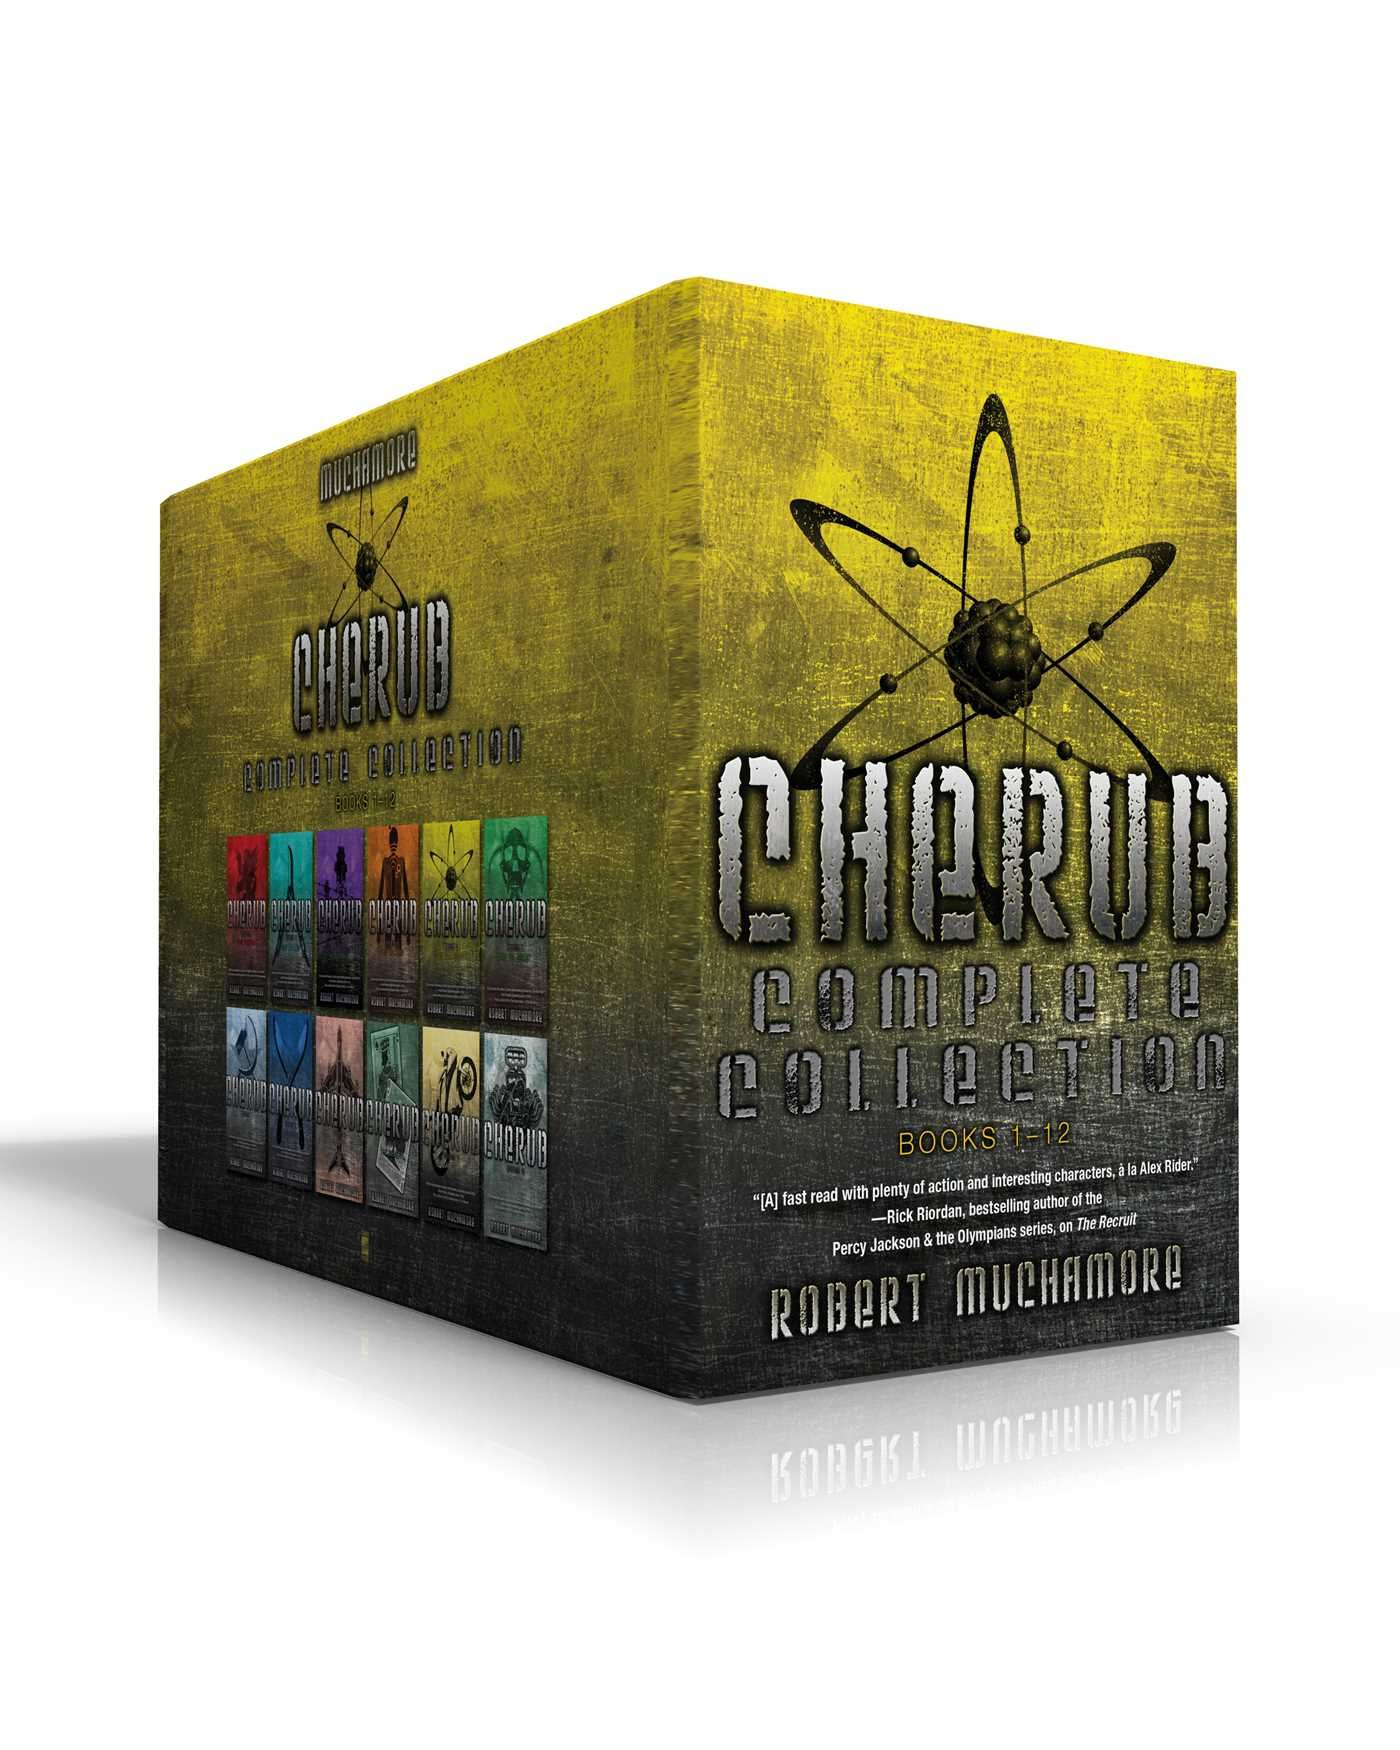 CHERUB Complete Collection Books 1-12: The Recruit; The Dealer; Maximum Security; The Killing; Divine Madness; Man vs. Beast; The Fall; Mad Dogs; The ... The General; Brigands M.C.; Shadow Wave by Simon Pulse